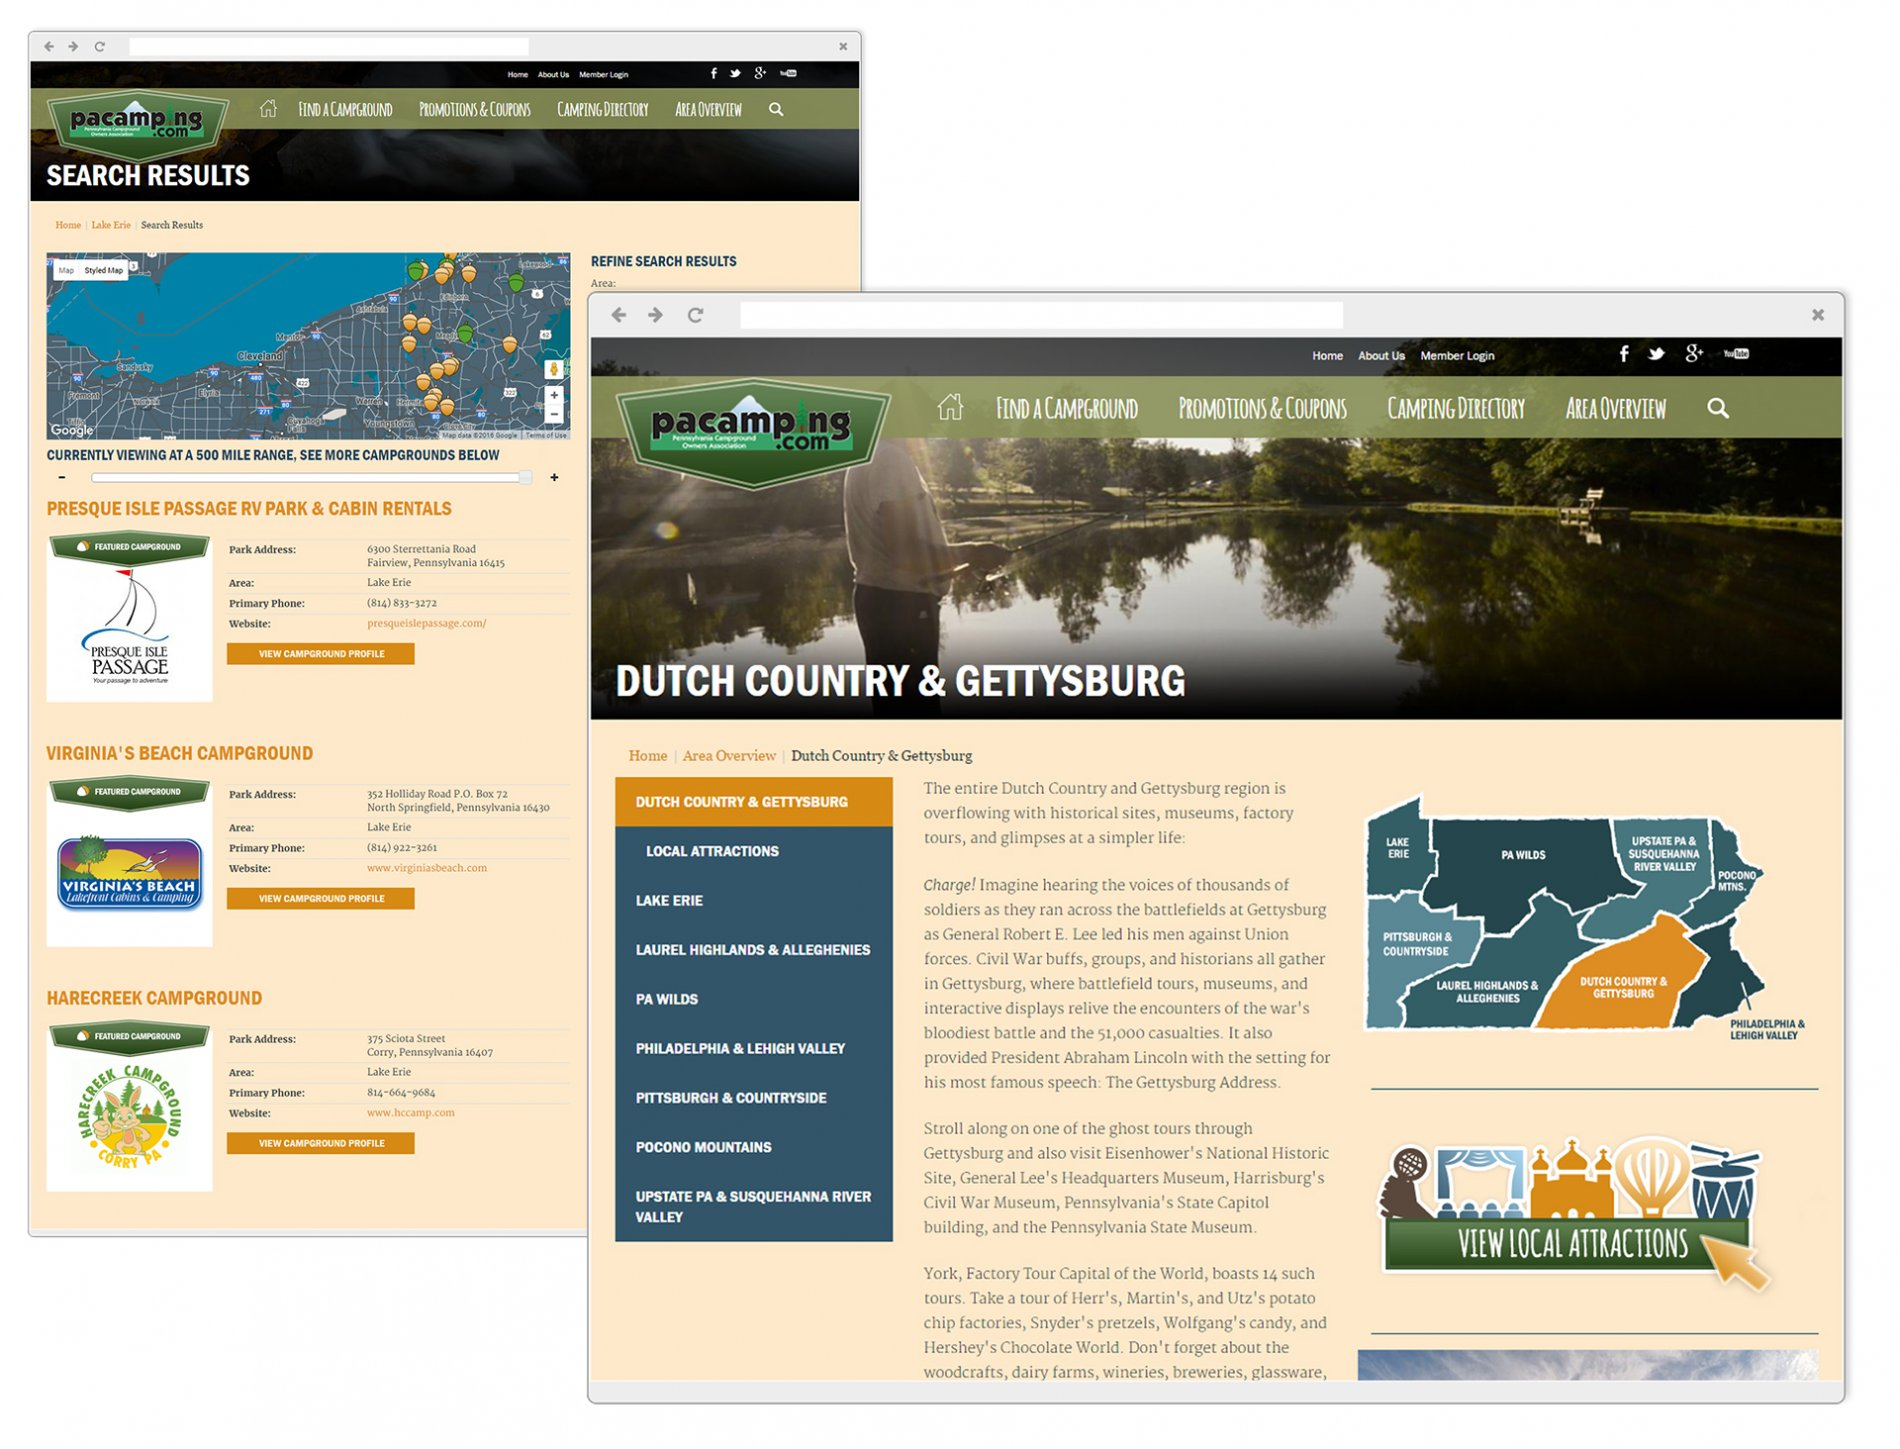 Pennsylvania Campground Owner's Association Website